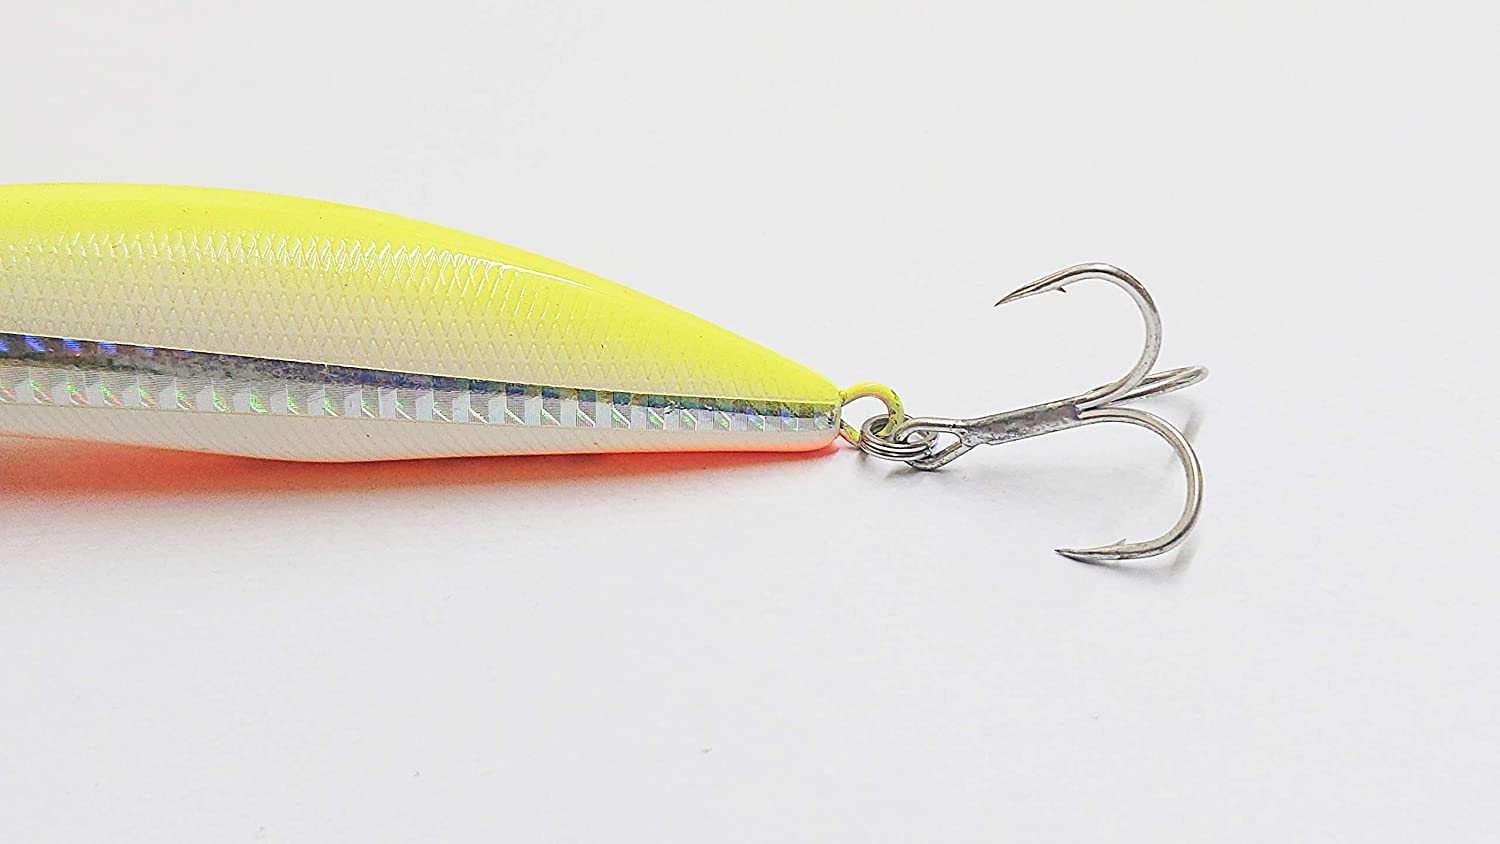 Predilures Bass Pike Game Lure 128mm 30g Diving Fast 2m Dive BBK Hooks Killer Holographic Striper Aggressive Swim Action KILLER MULLET